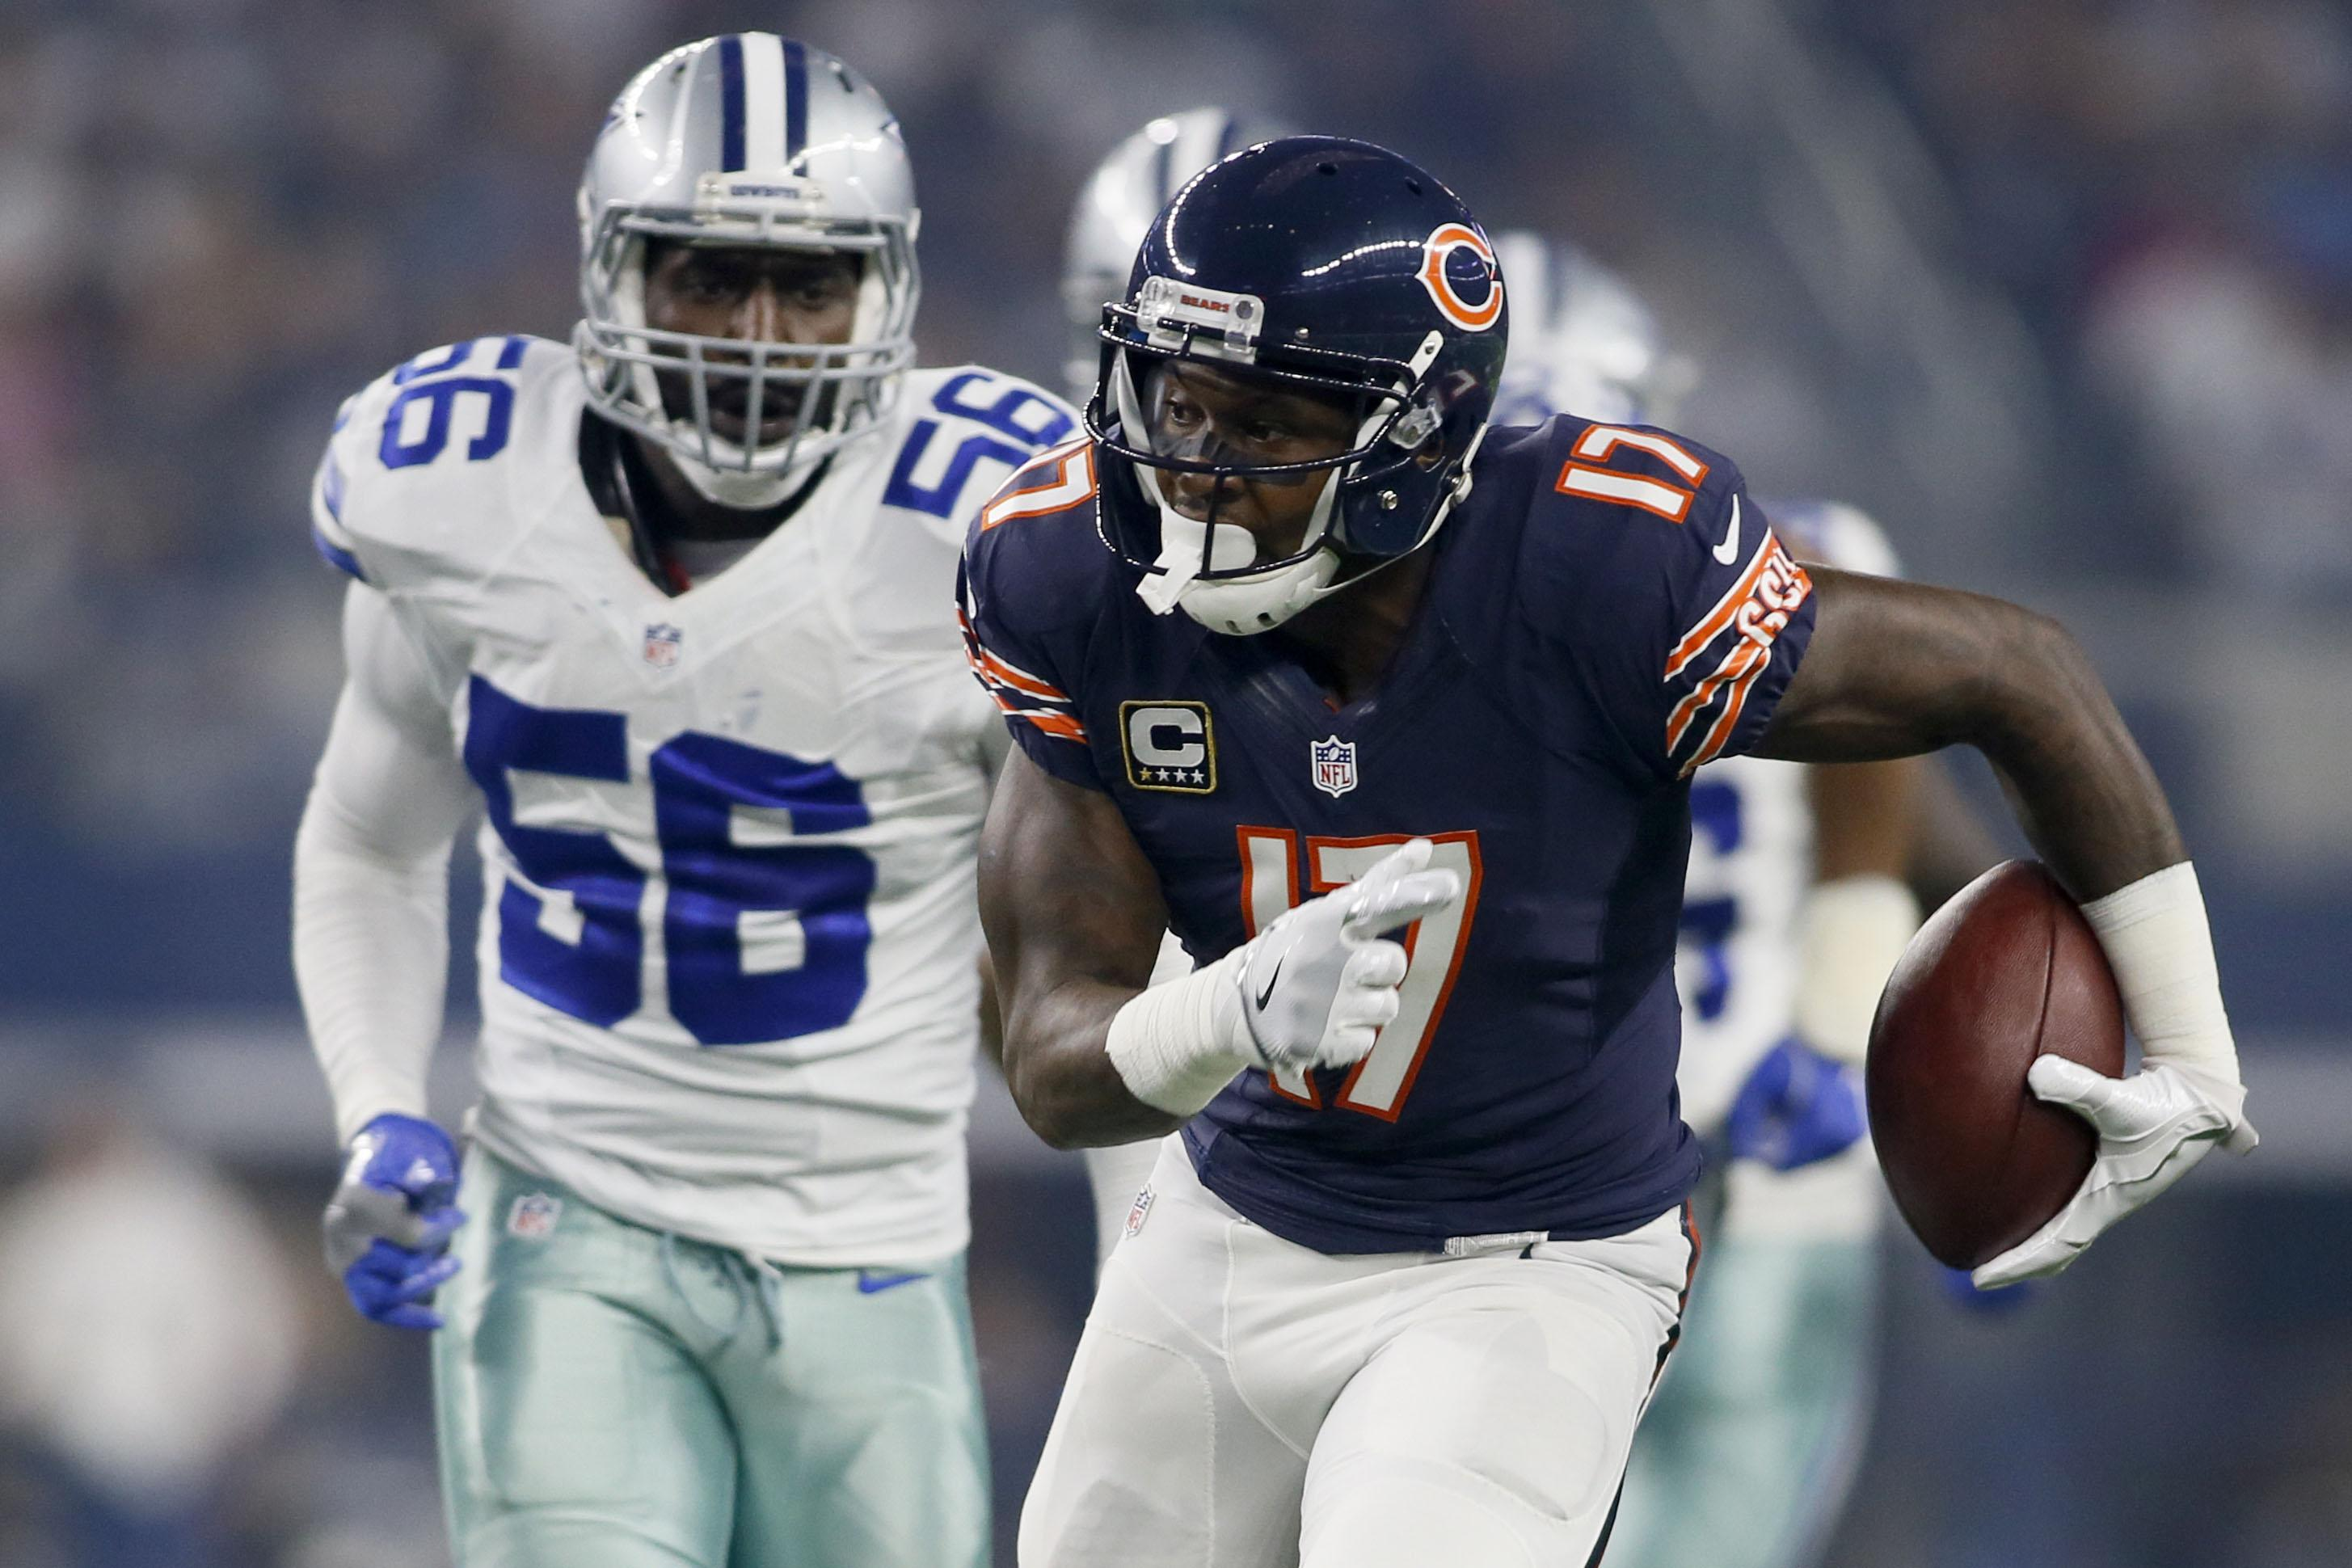 NFL Free Agency Rumors 2017: Eagles, Colts Chasing Bears' Alshon Jeffery?